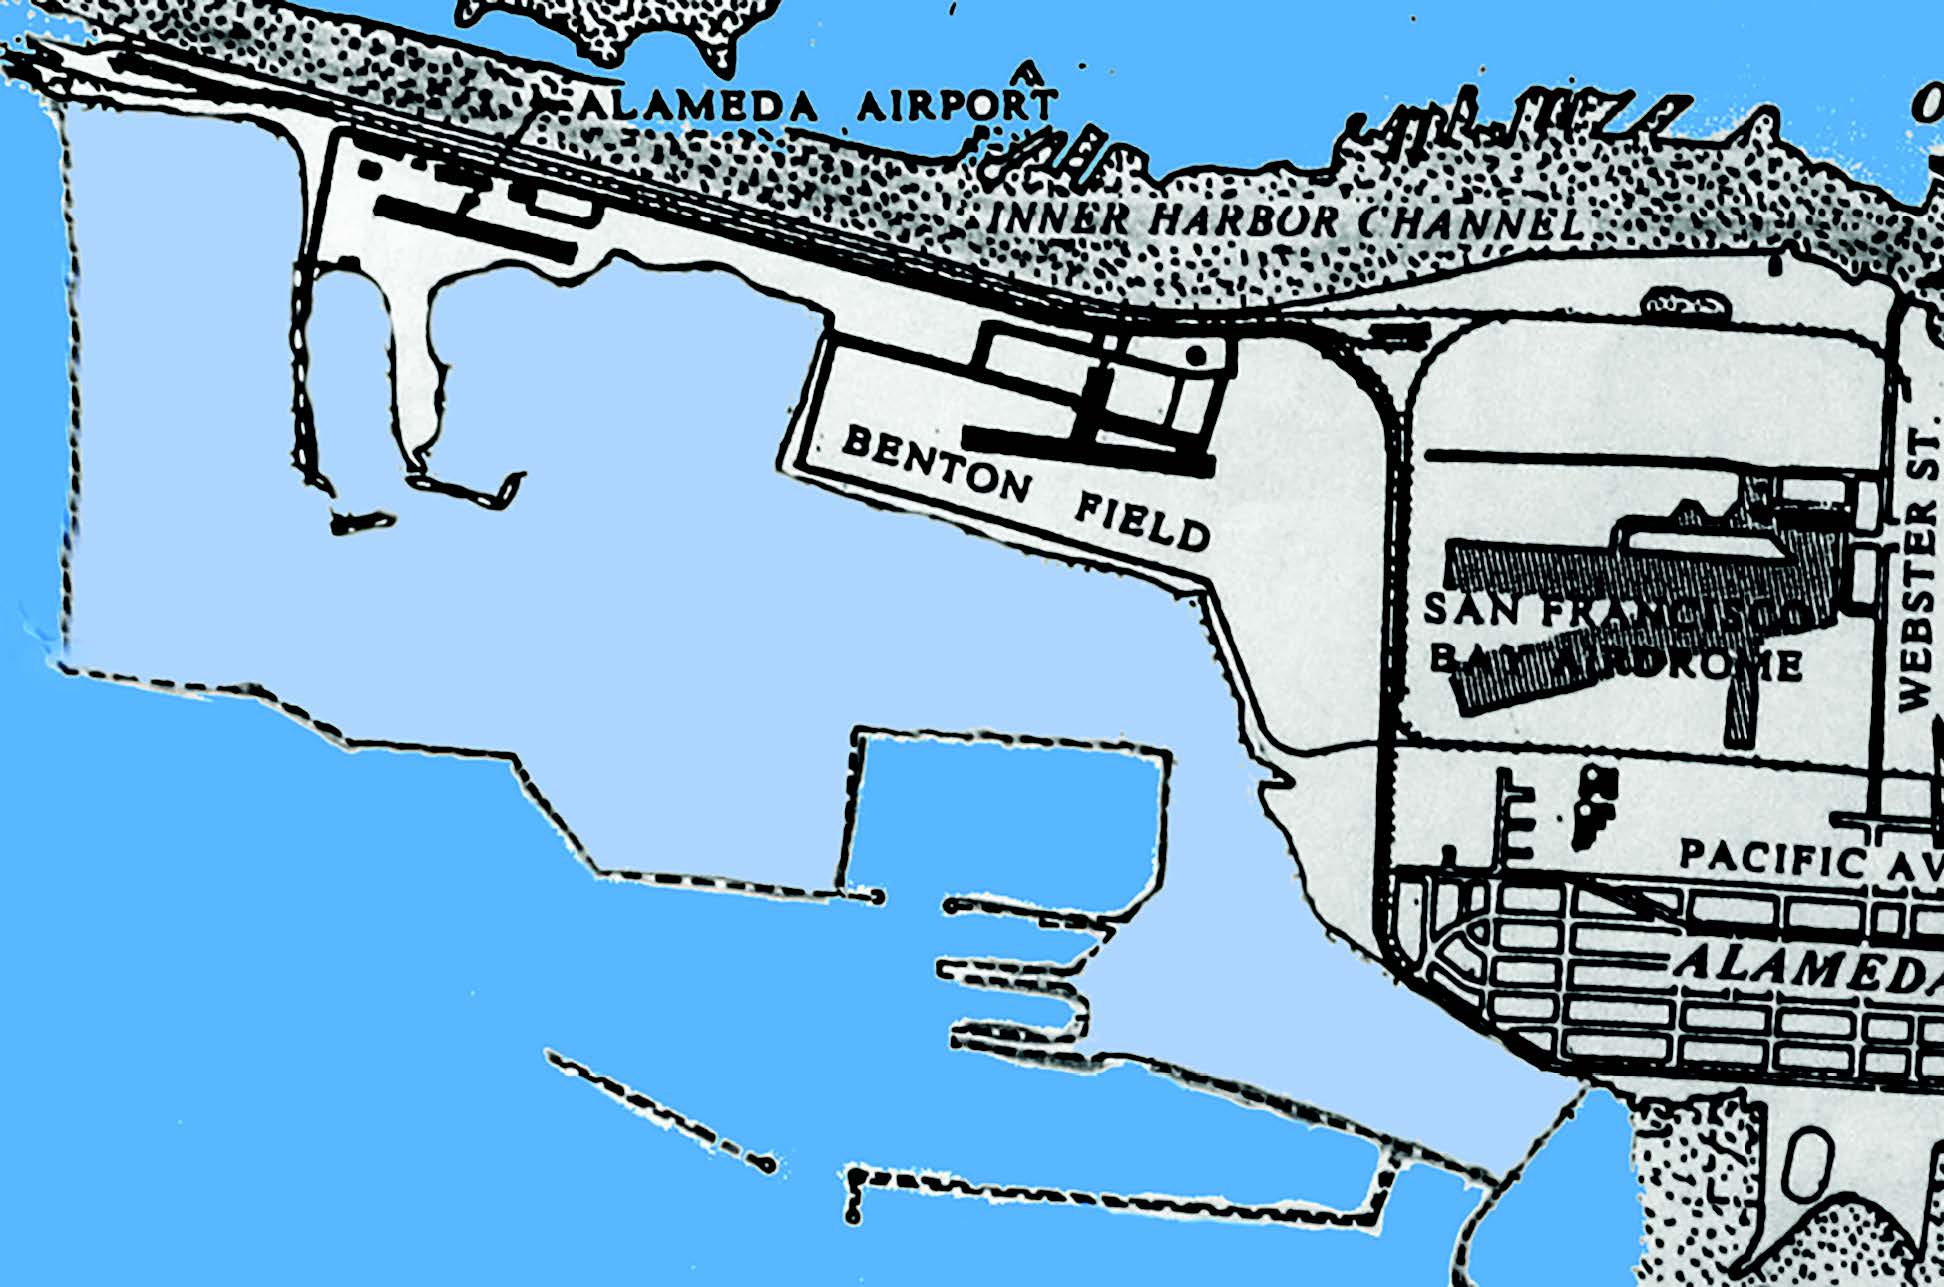 Two airports served Alameda and one the Army Air Force before the United States Navy arrived in 1940. (From left to right): Alameda Airport opened in 1929 on a strip of land along the Oakland Estuary. Benton Field opened in 1927. This Army Air Force field was bounded roughly by today's Pan Am Way, West Red Line Avenue, Monarch Street and West Tower Avenue. In 1930, planes began landing at the San Francisco Airdrome, which stood on the site of today's College of Alameda. The light blue on the map defines the